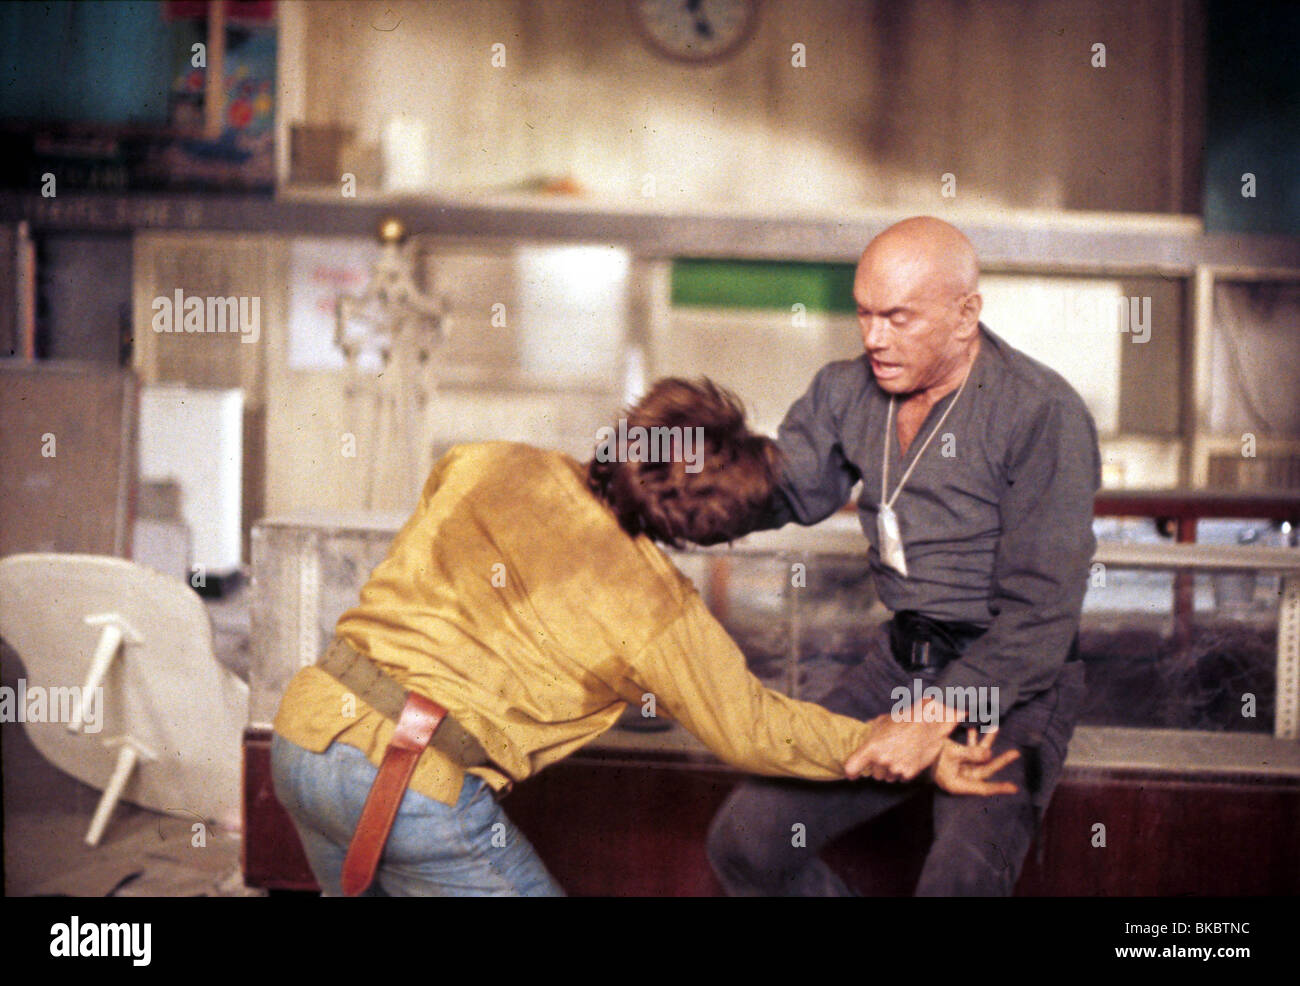 DER ULTIMATIVE KRIEGER (1975) YUL BRYNNER ULW 002 Stockbild